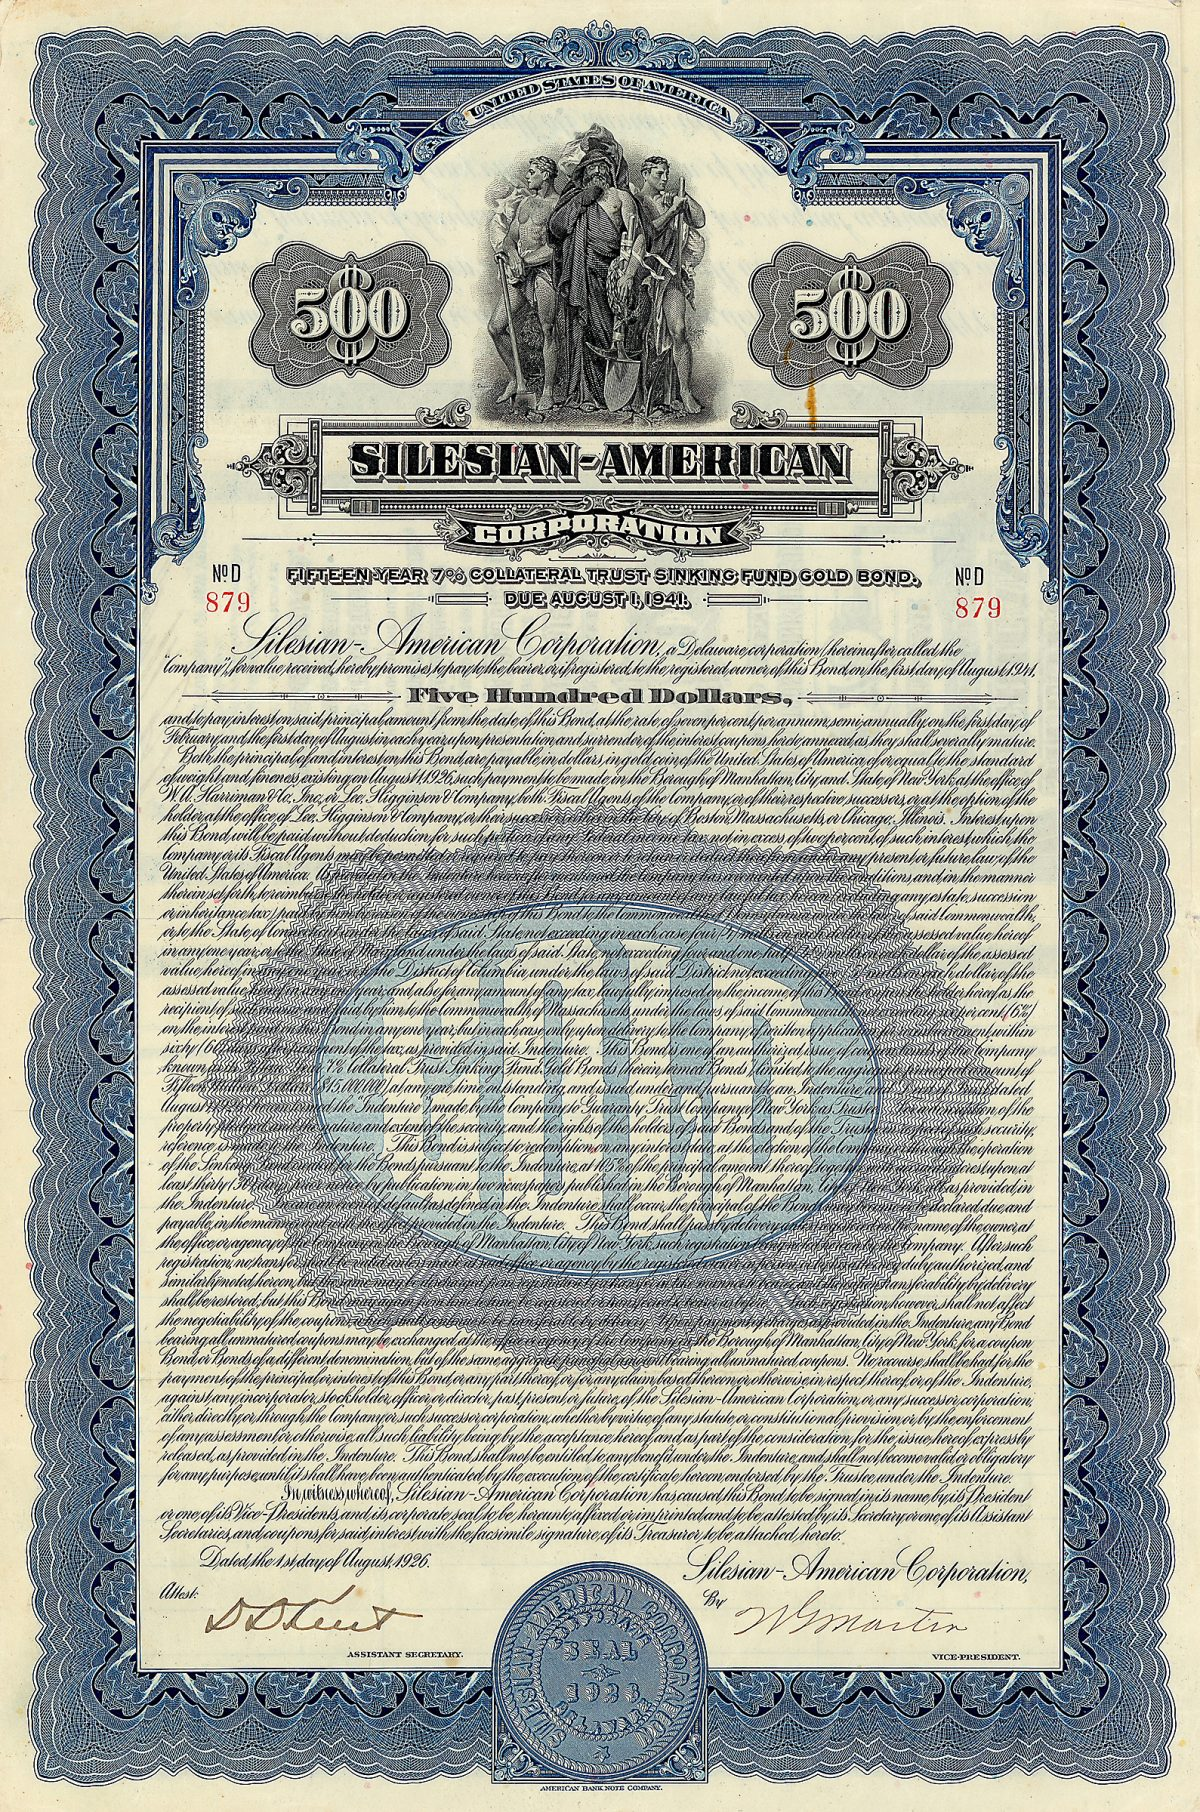 Silesian-American Corporation, Gold Bond 500 Dollars, dated 1925